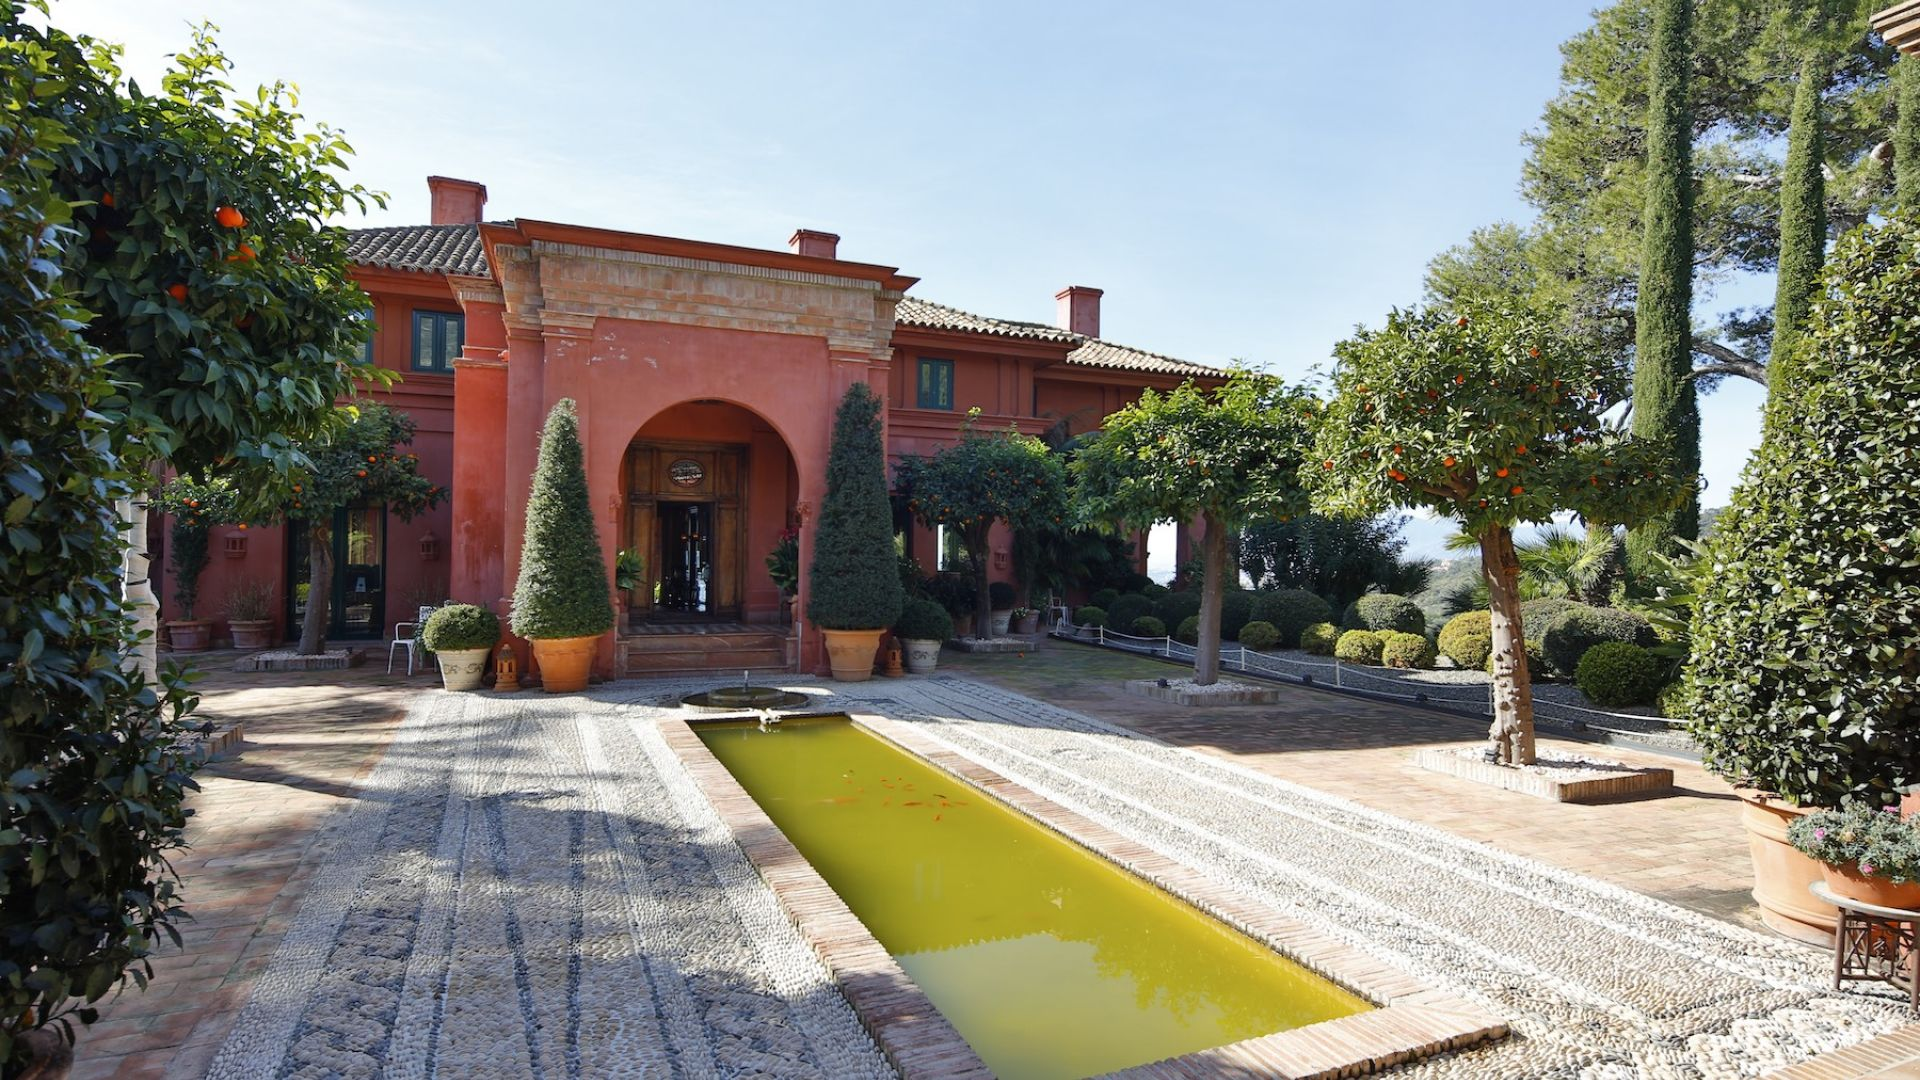 Maison unifamiliale pour l Vente à Magnificent residence located in the hills above Marbella Marbella, Costa Del Sol, 29600 Espagne